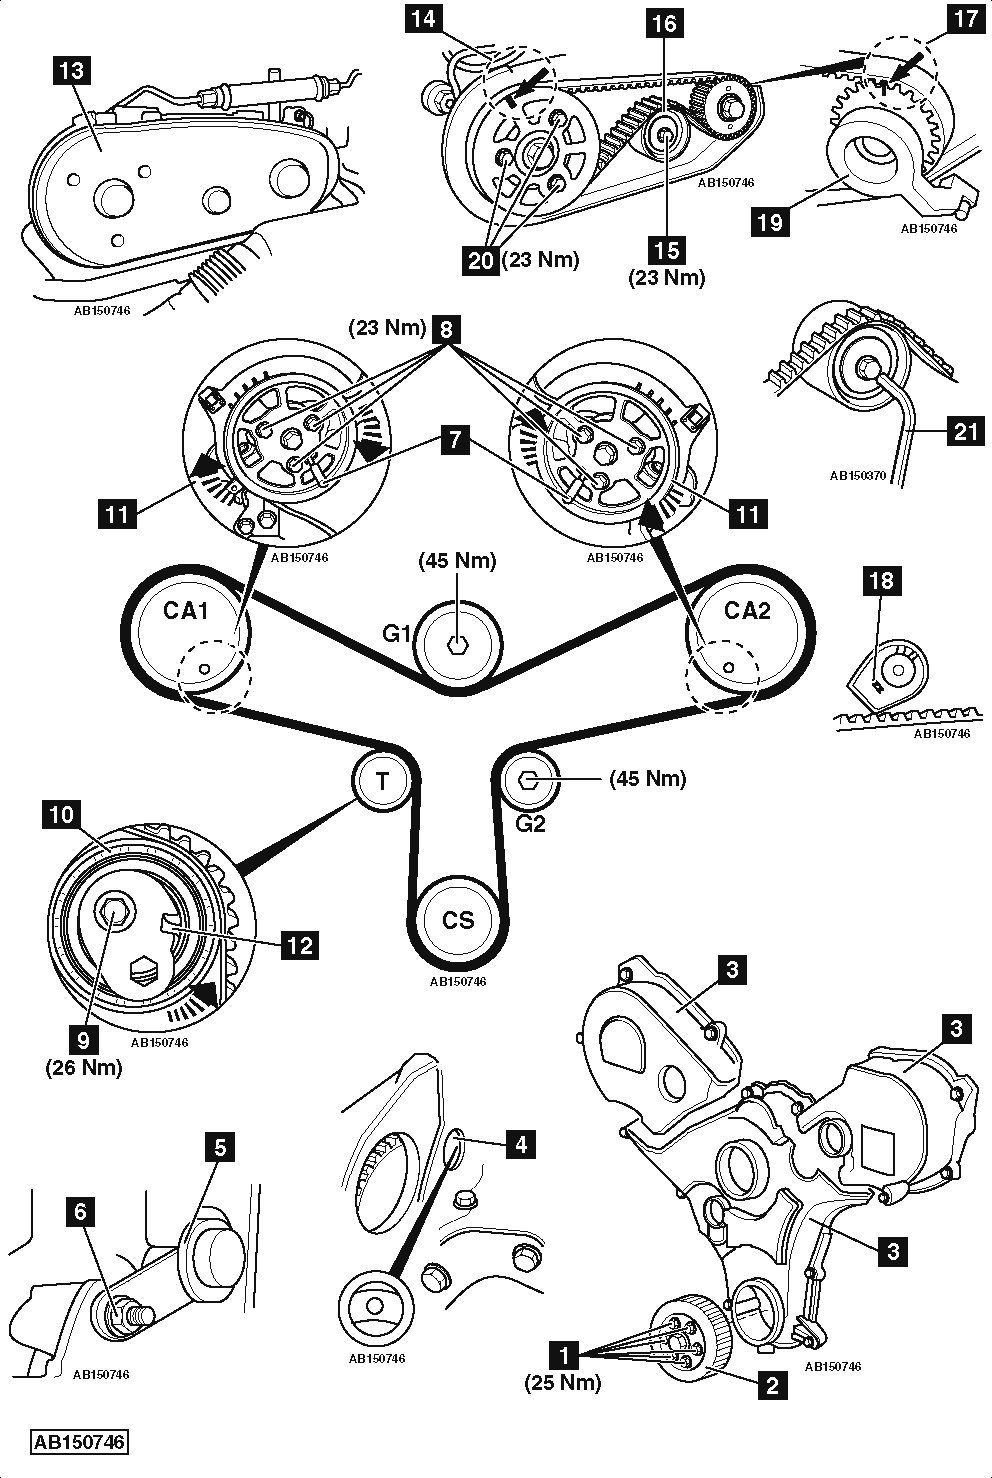 6 0 Powerstroke Oil Filter Location Wiring Diagram And Fuse Box Ford 7 3 Fuel Gm 5 3l Engine Cooler As Well Sel In